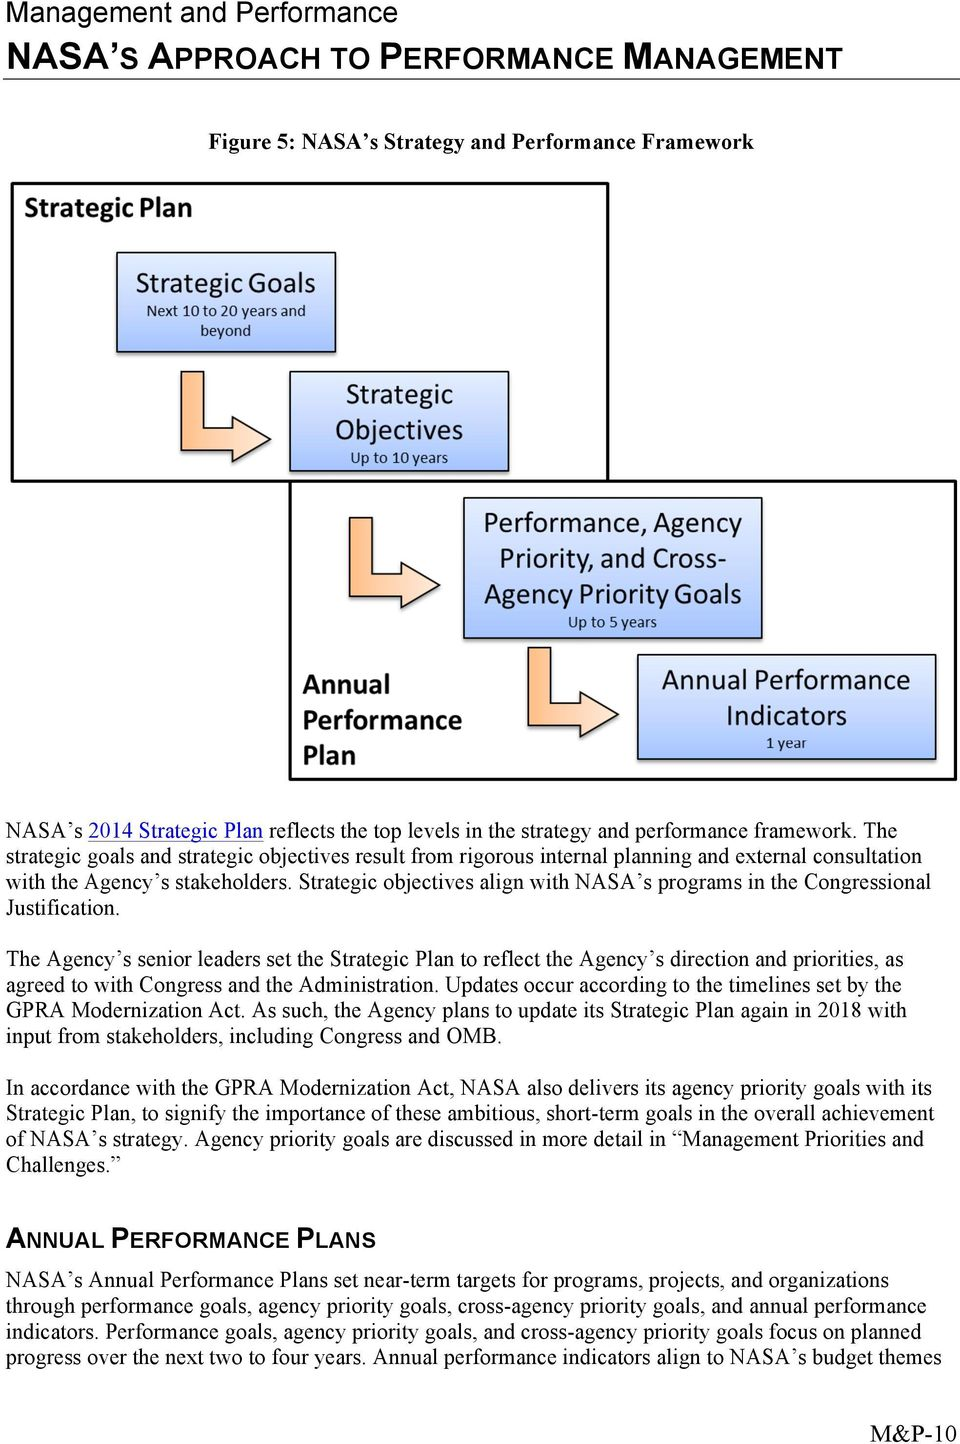 Strategic objectives align with NASA s programs in the Congressional Justification.